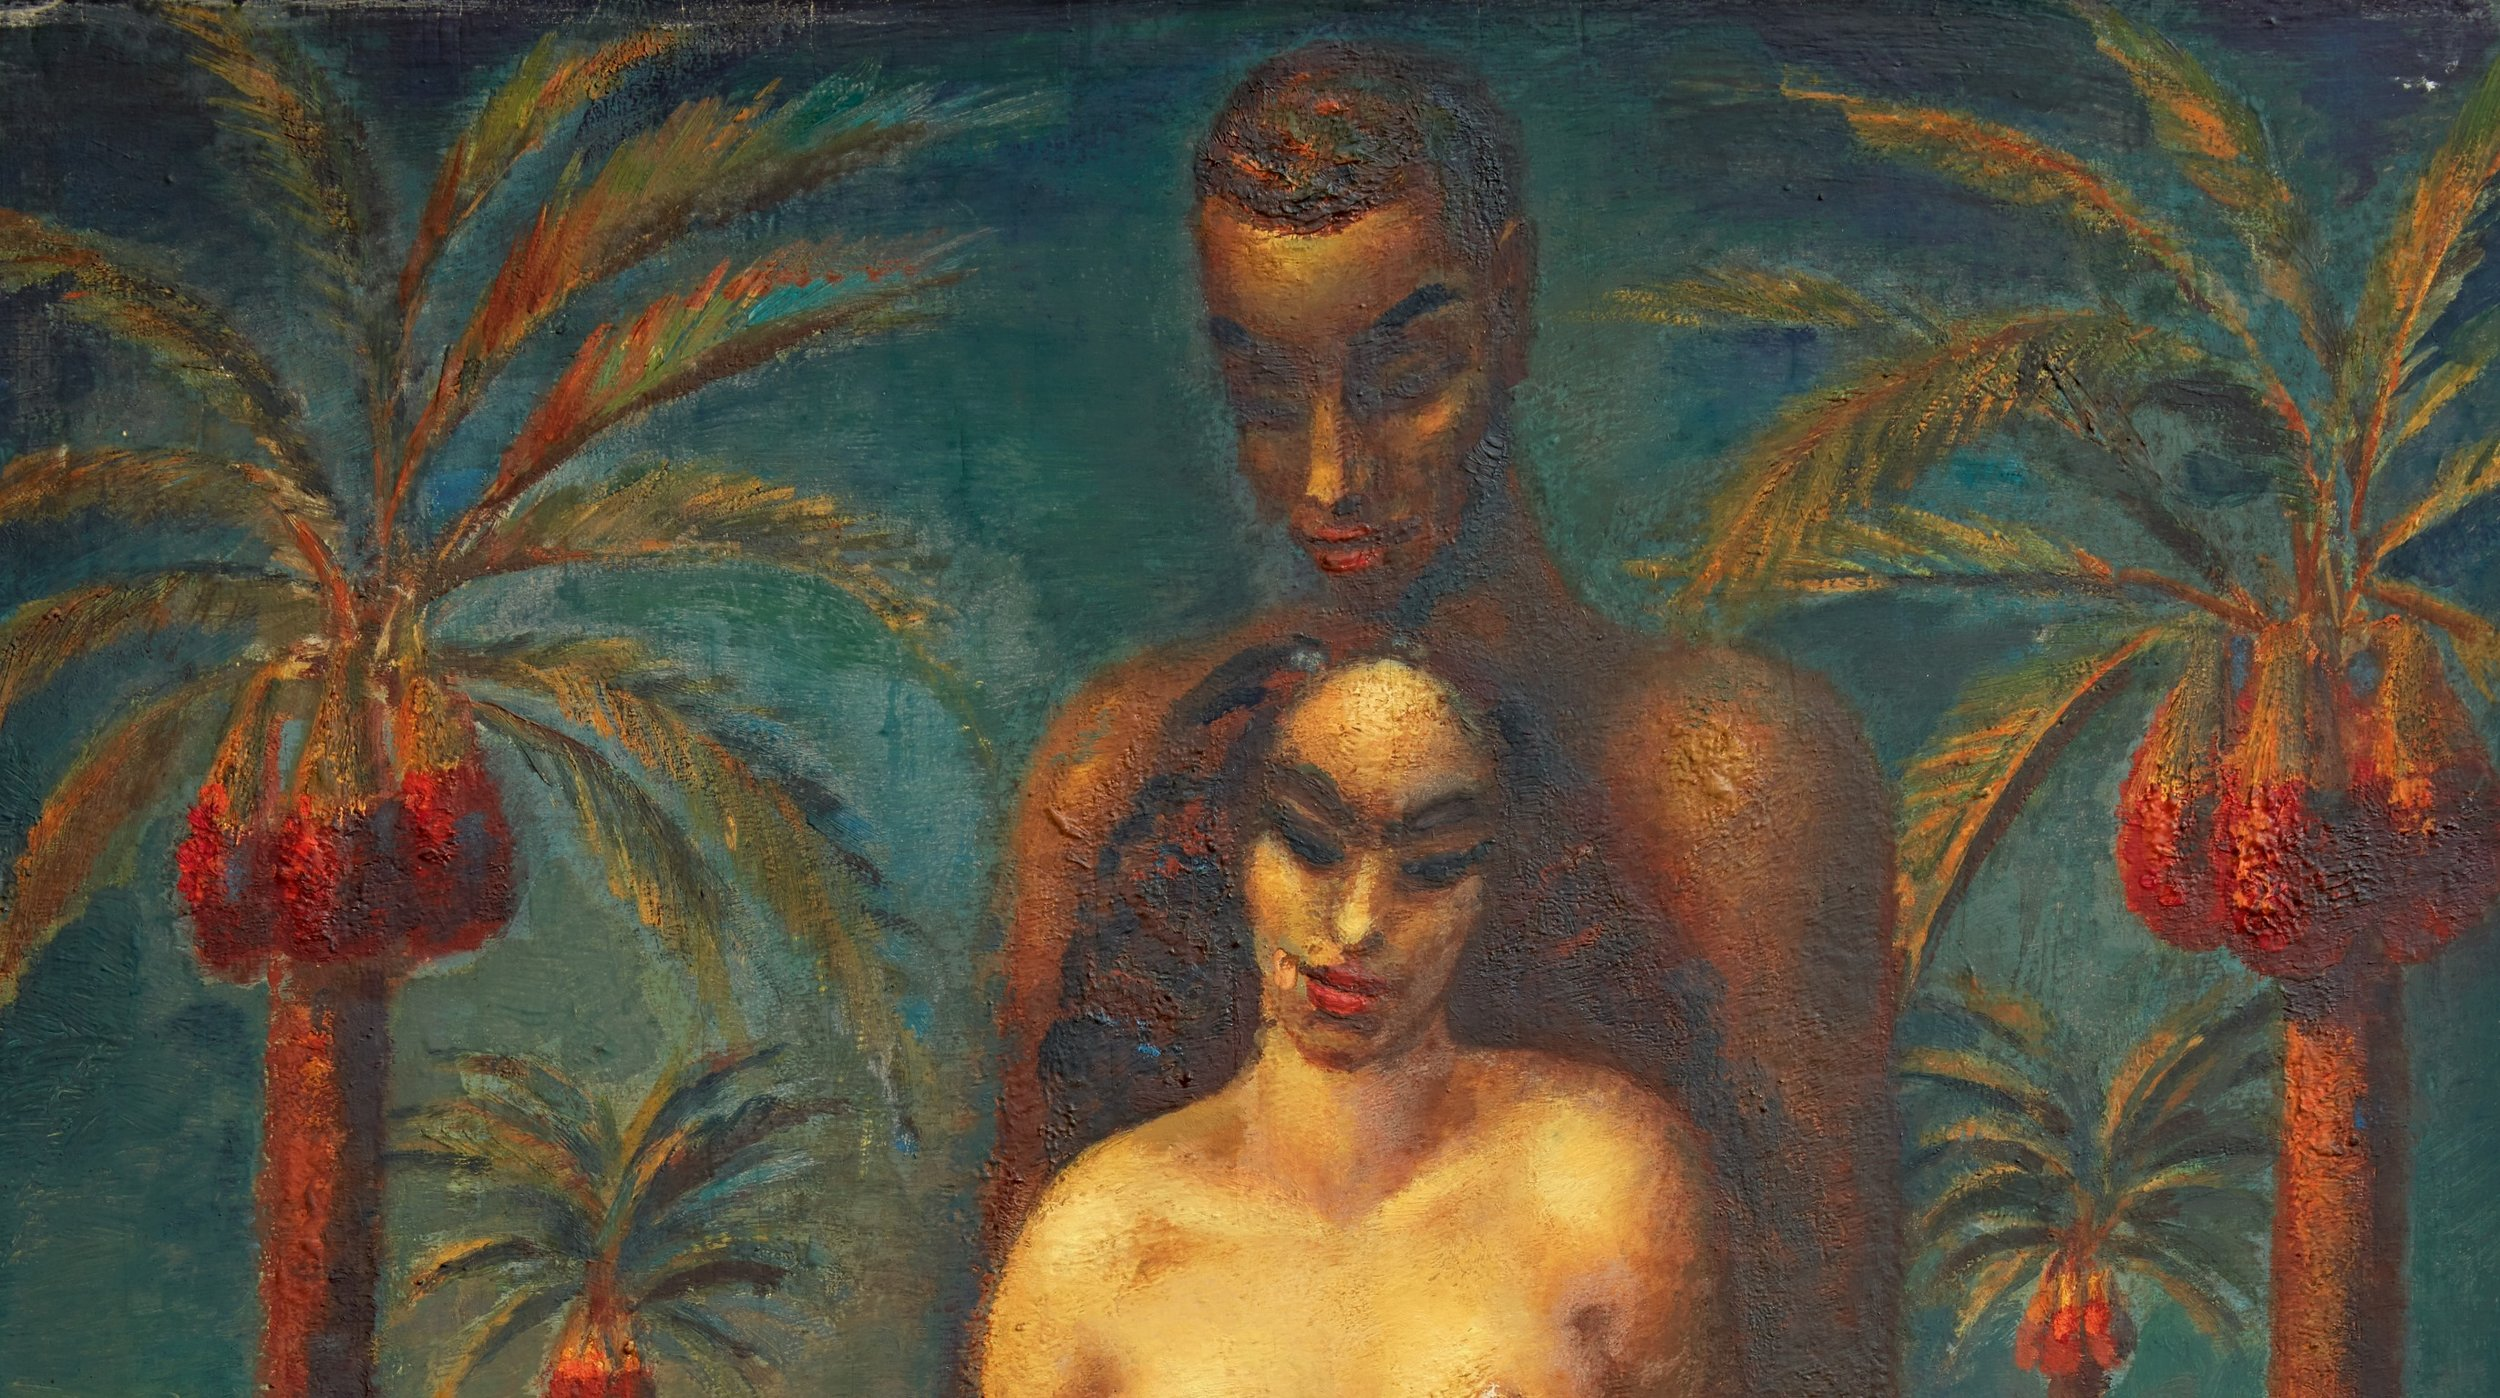 Adam and Eve will highlight Sotheby's 20th Century Art / Middle East auction on 24 April, when it will be offered with an estimate of £300,000-500,000. Image credit: Sotheby's London.